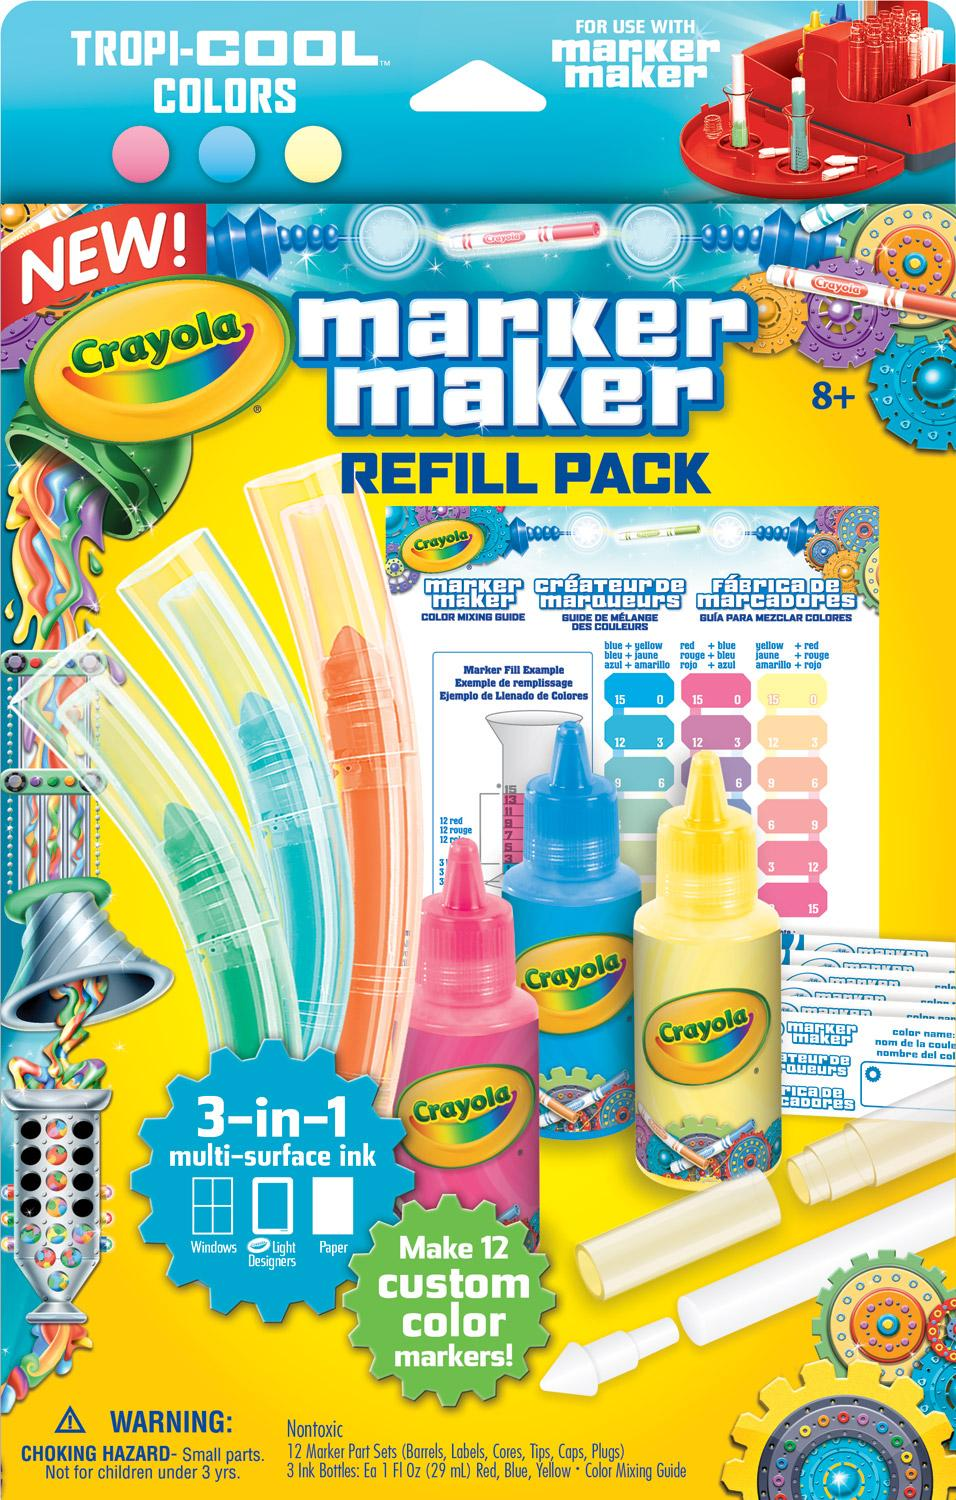 Amazon.com: Crayola Marker Maker Refill, Pastel Colors: Toys & Games